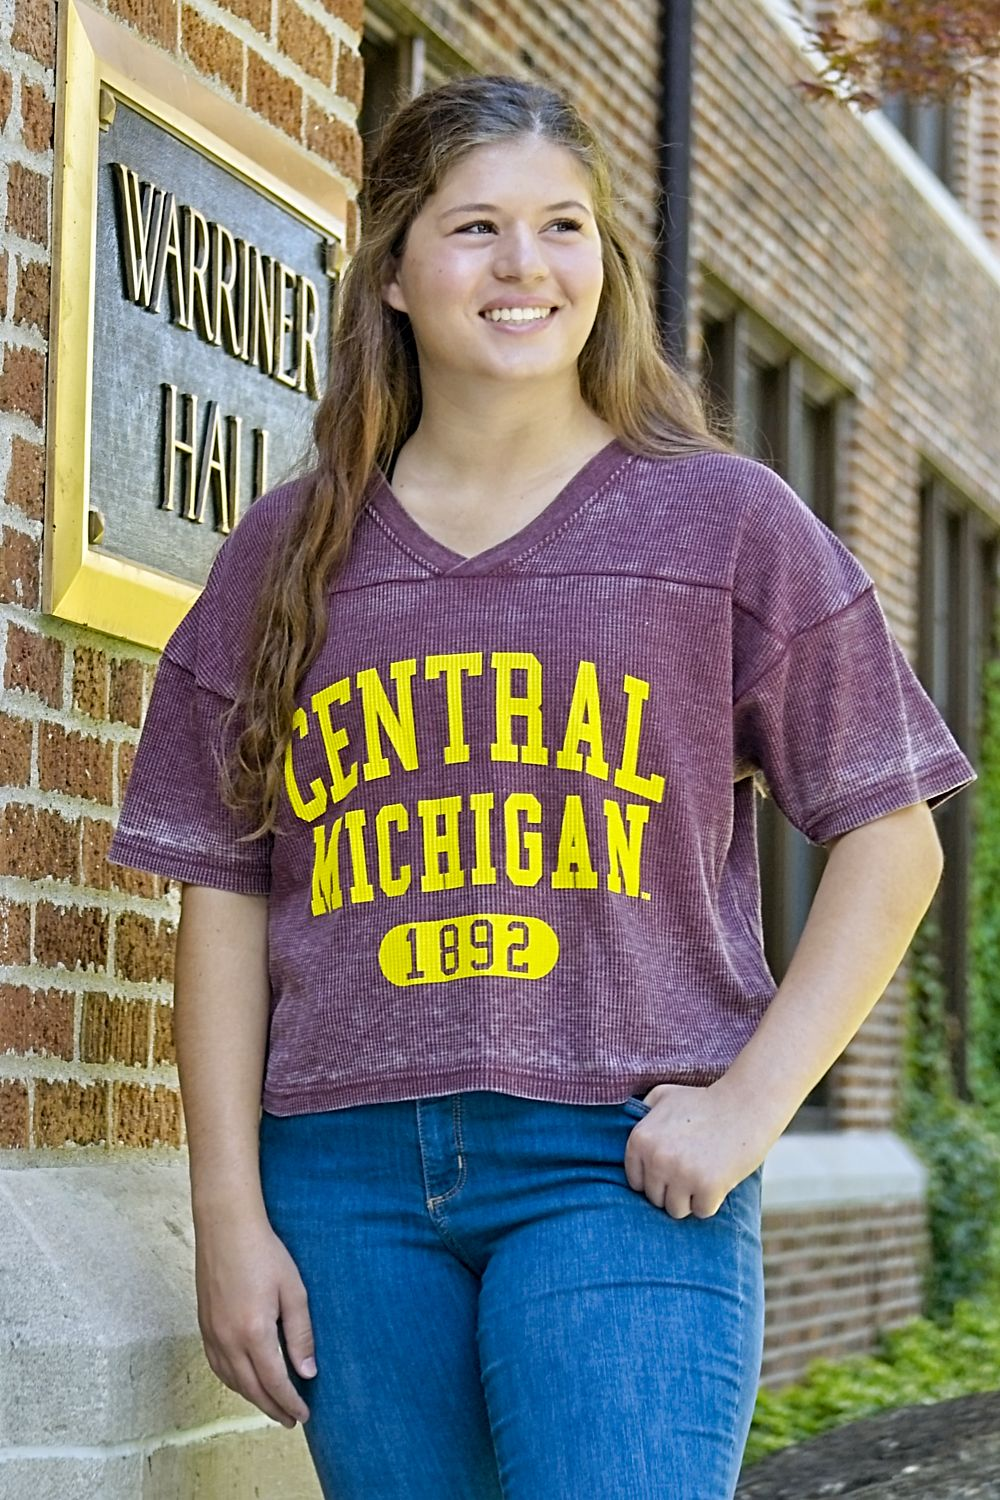 Central Michigan 1892 Maroon Women's Waffle Crop V-neck<br><small>CHICKA-D</small> (SKU 5046888198)